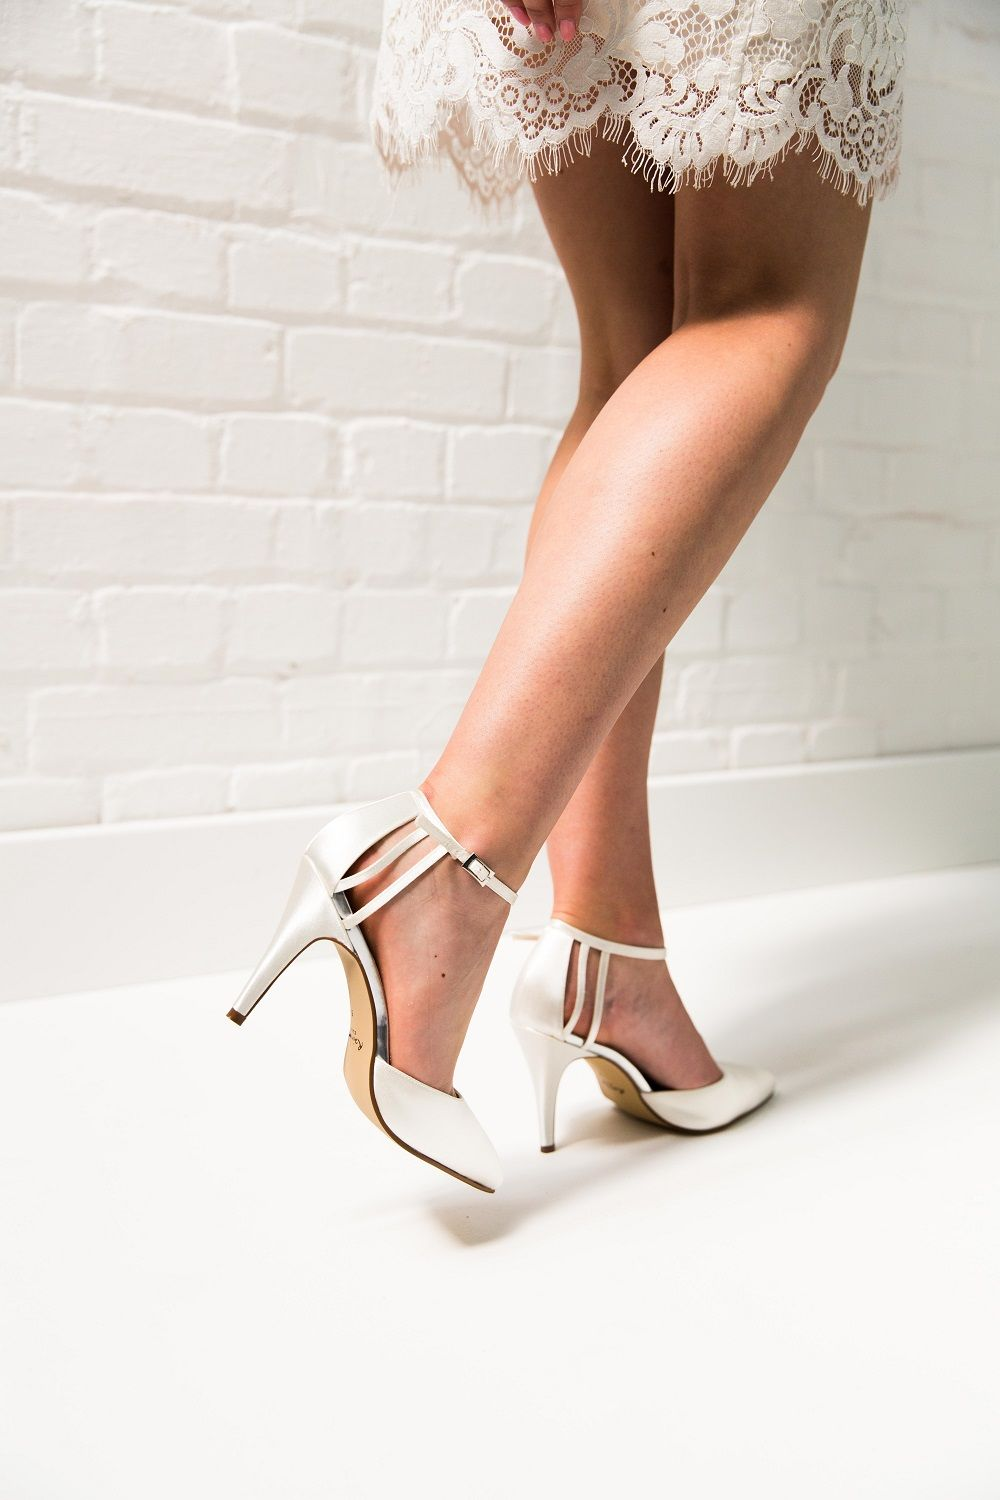 69f4ae74c91 Kennedy Ivory Satin Ankle Strap Court Shoes - A real showstopper of a bridal  shoe